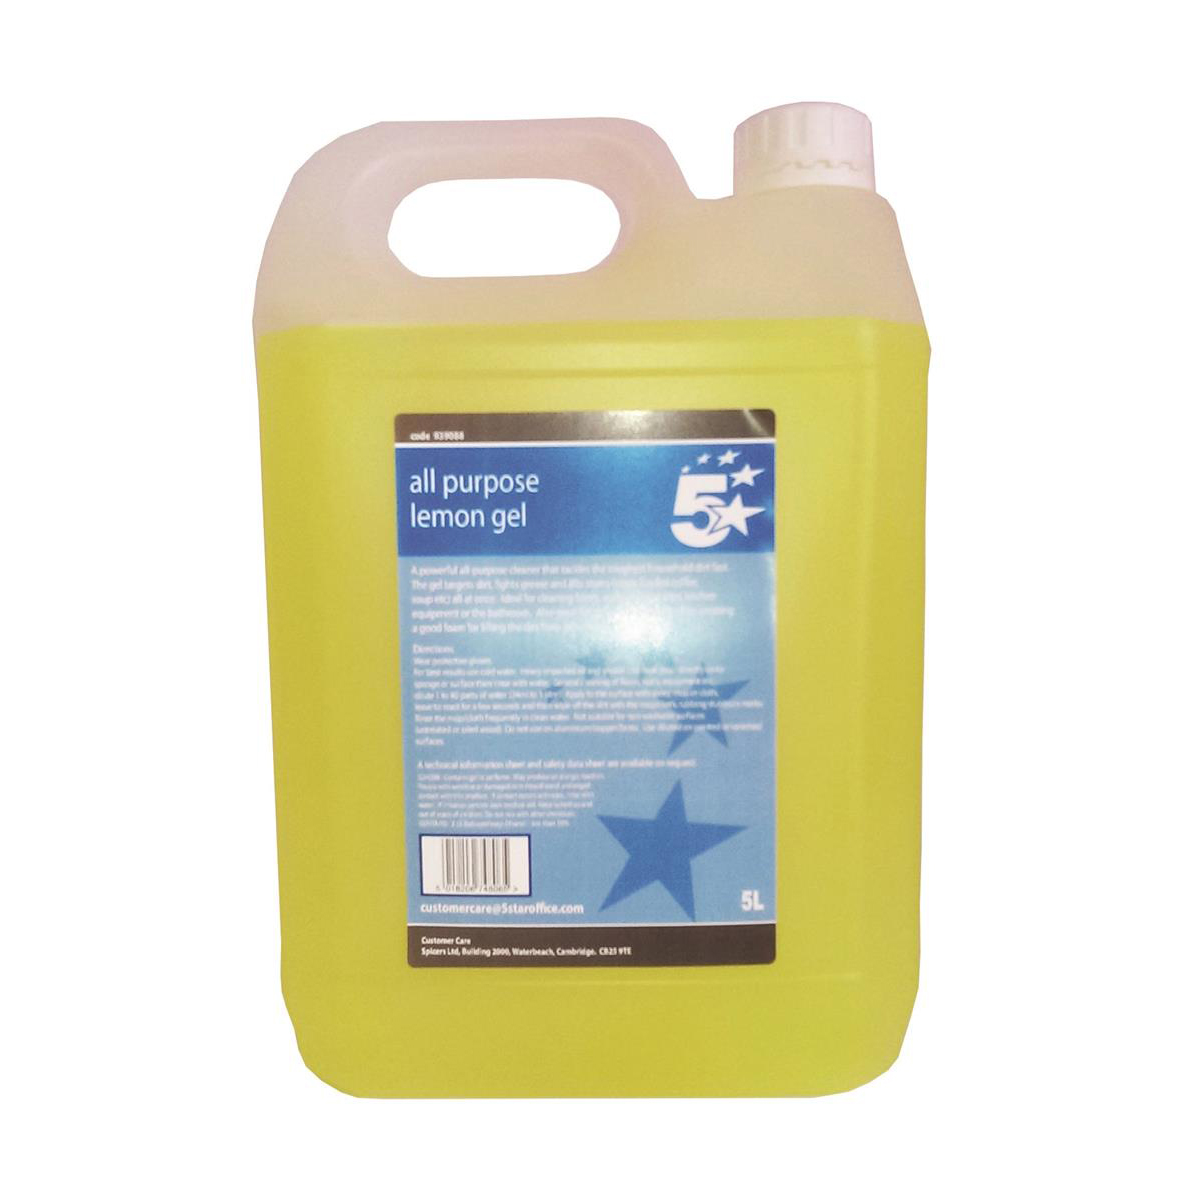 Cleaning Chemicals 5 Star Facilities All Purpose Lemon Cleaning Gel 5 Litre